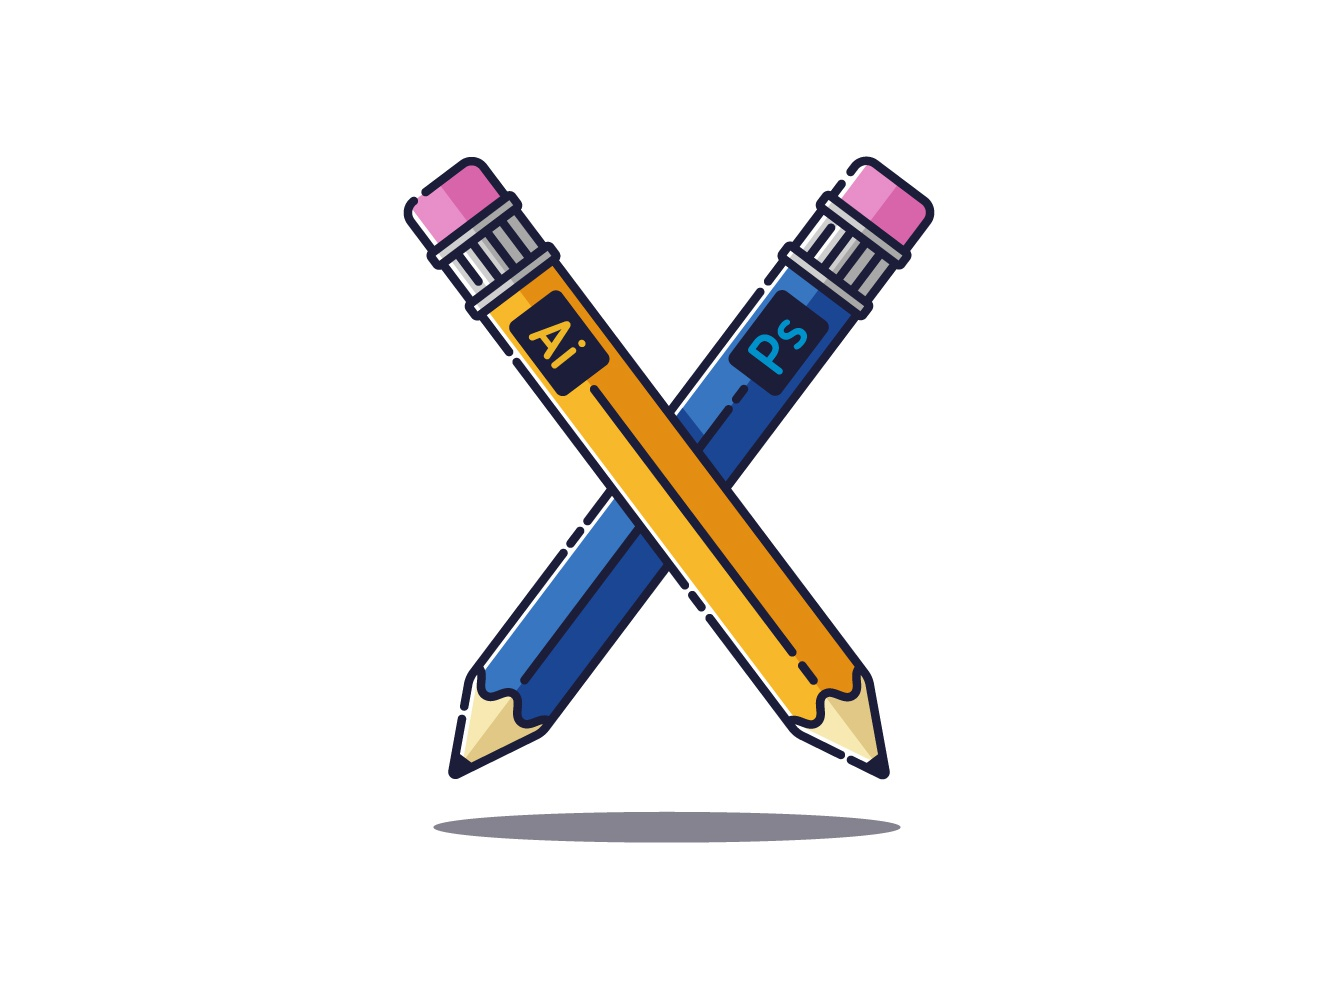 Adobe Pencils by Nenad Teofanov on Dribbble